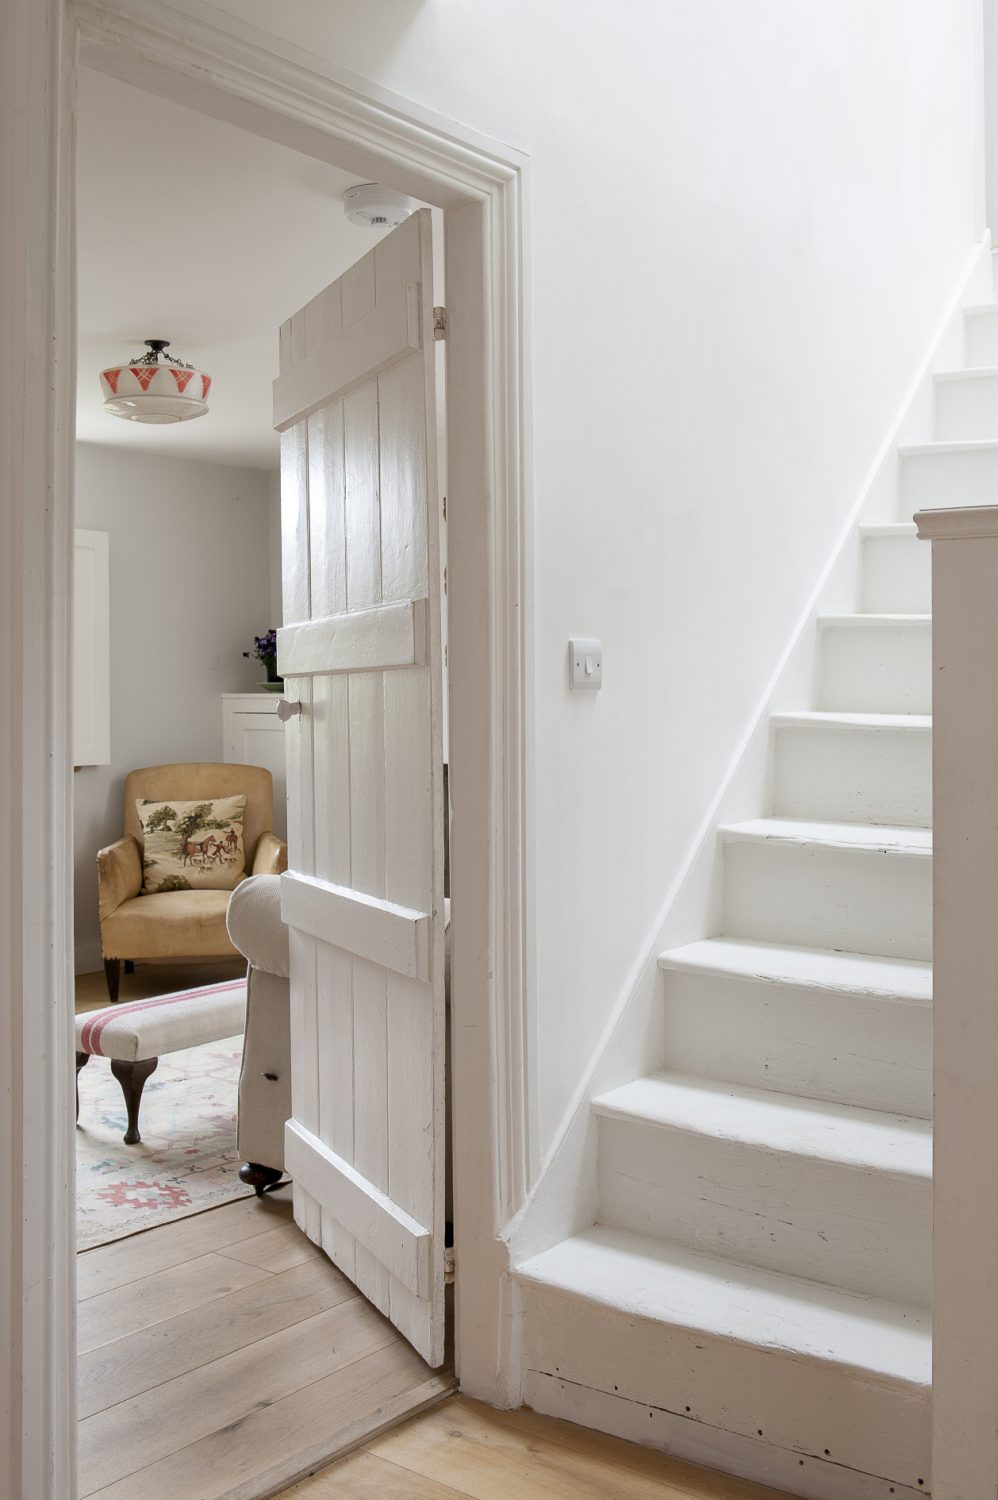 Shades of white and grey in the snug and stairwell reflect natural light